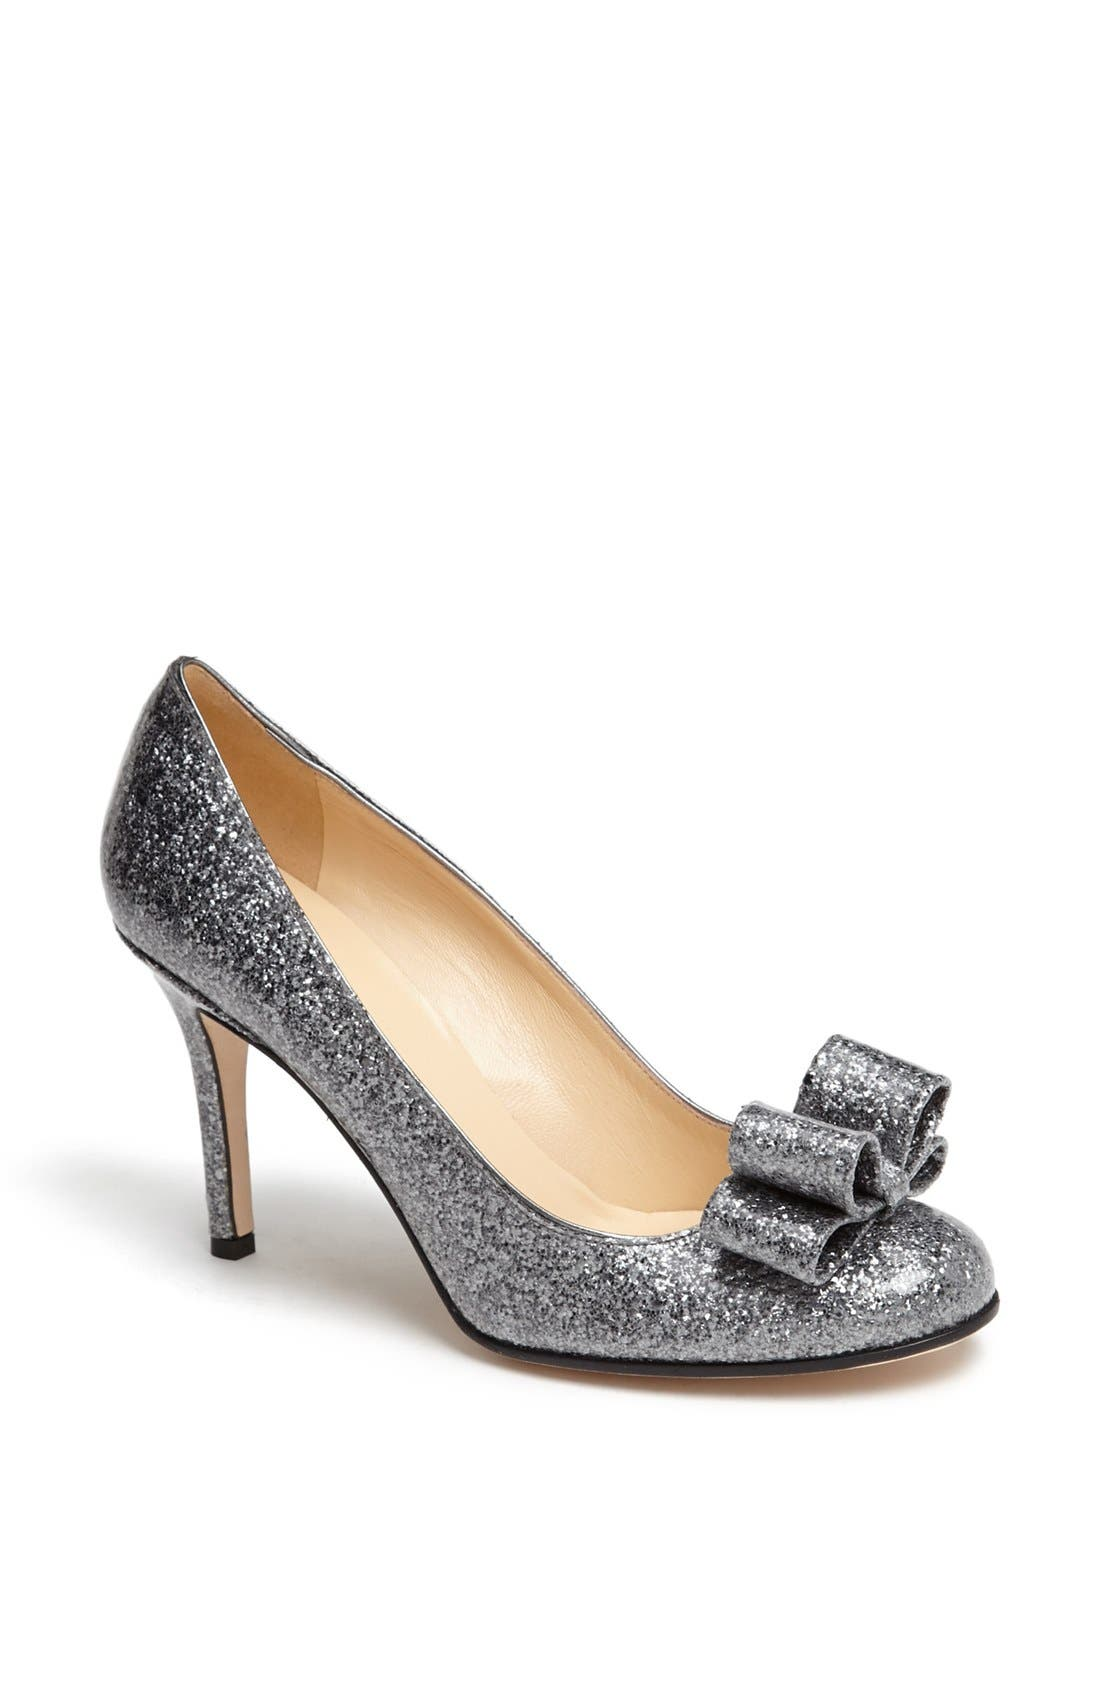 Alternate Image 1 Selected - kate spade new york 'krysta' pump